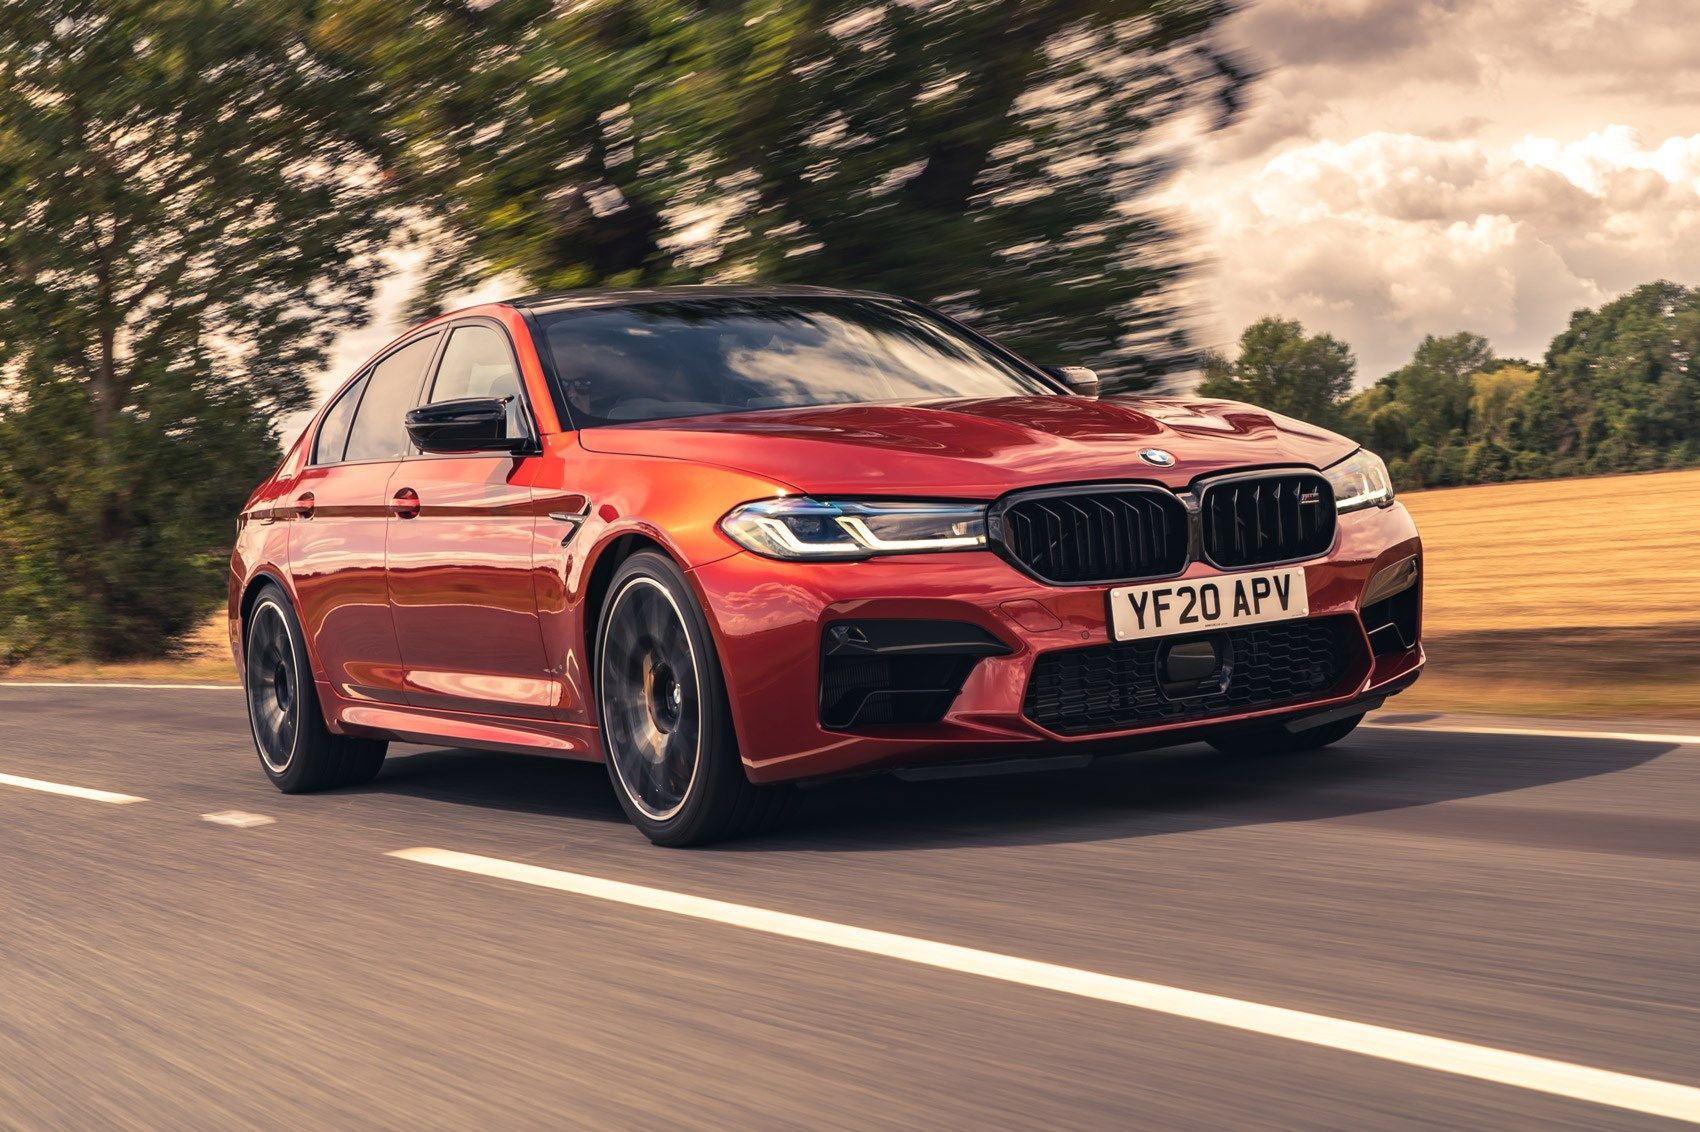 Best Of The Best: Mercedes-AMG E 63S Vs BMW M5 Competition